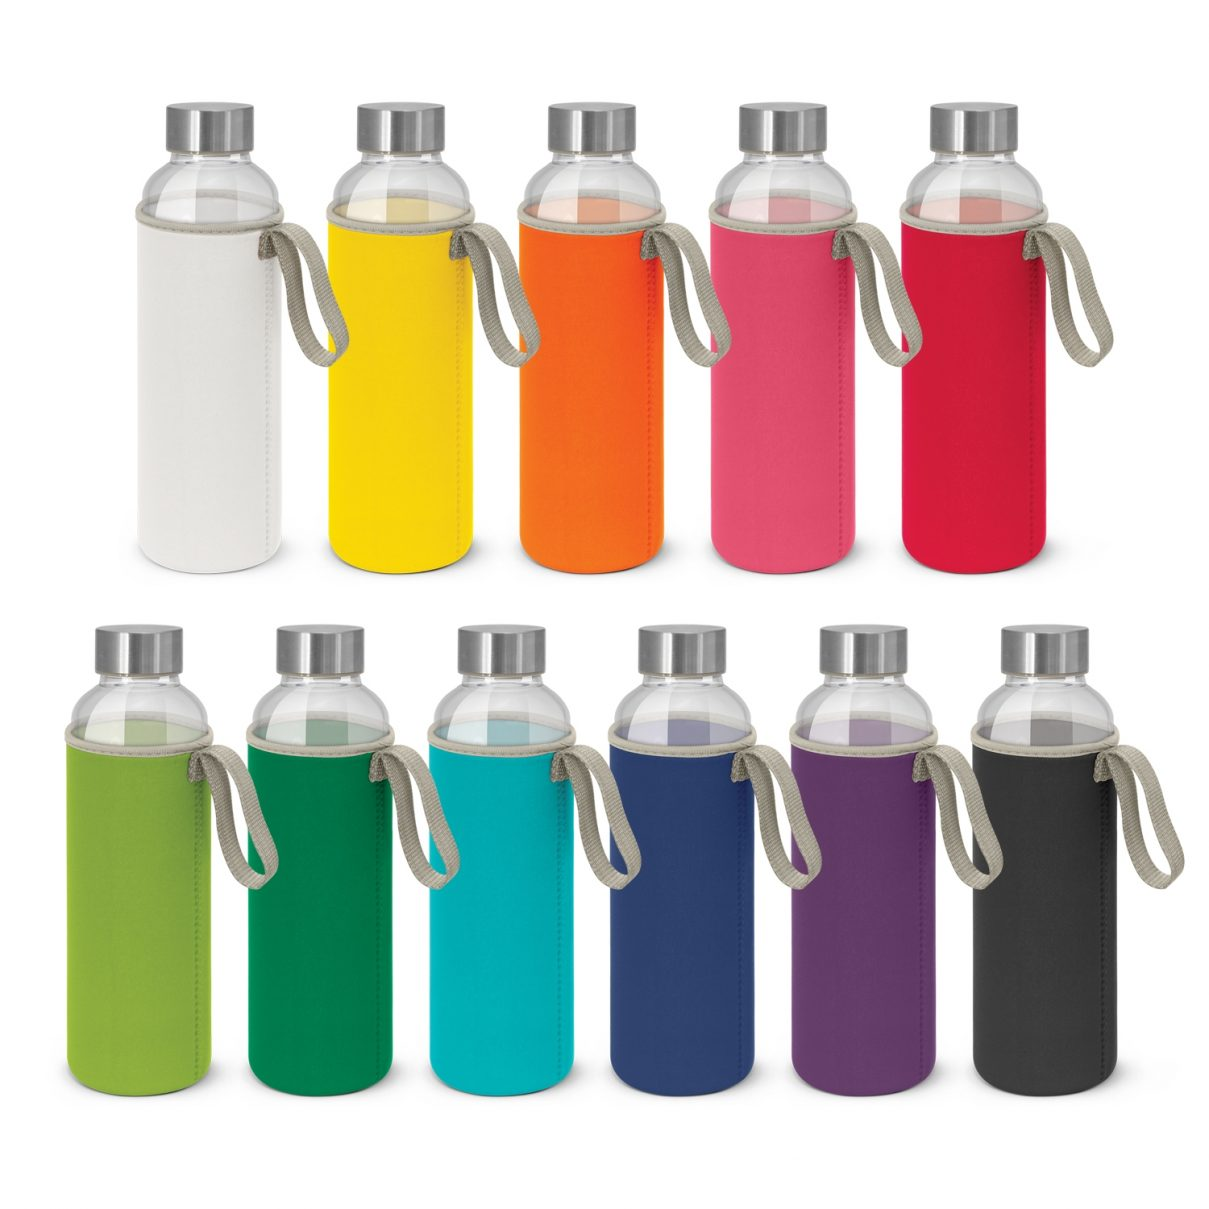 Venus Drink Bottle - Neoprene Sleeve Bulk Supplier